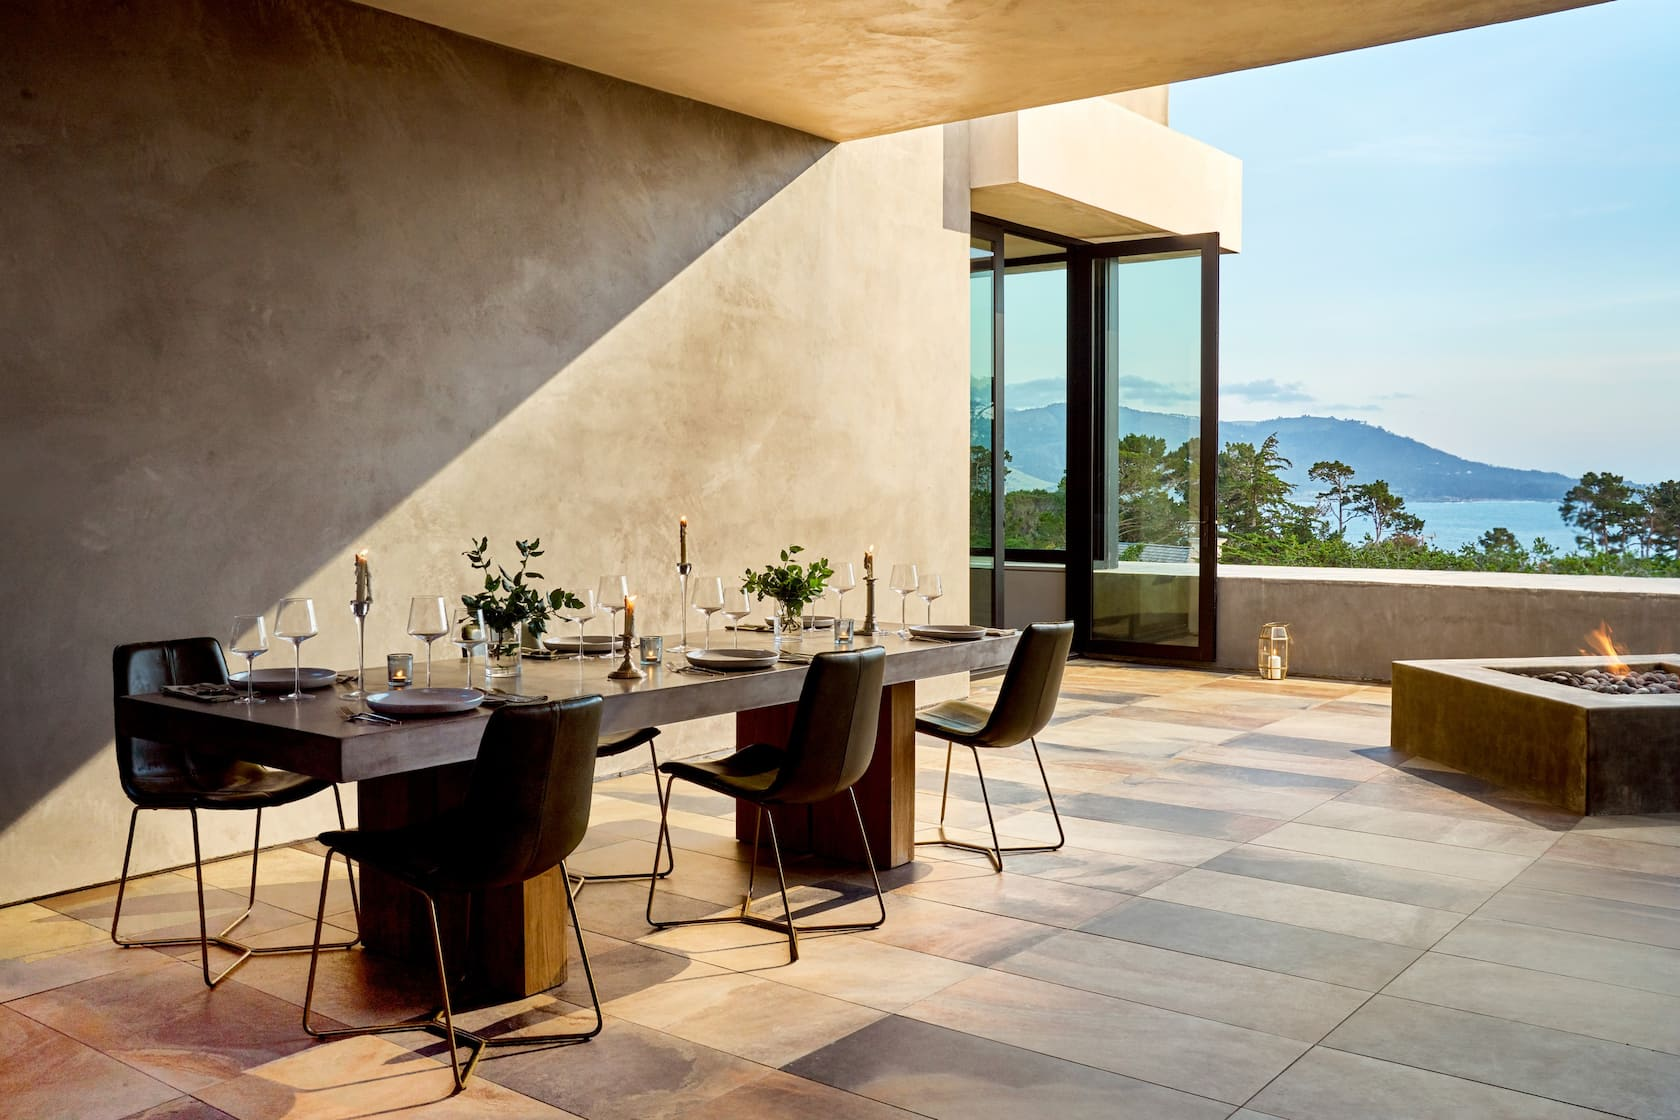 Luxury rentals in Saint-Tropez